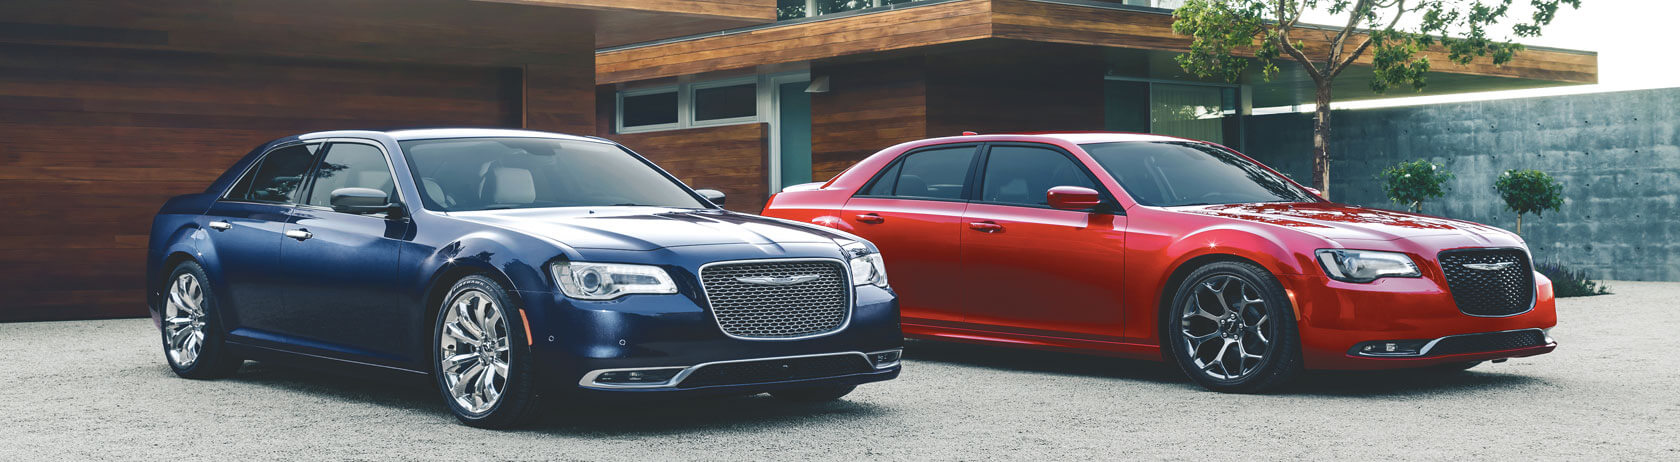 chrysler 300 lineup